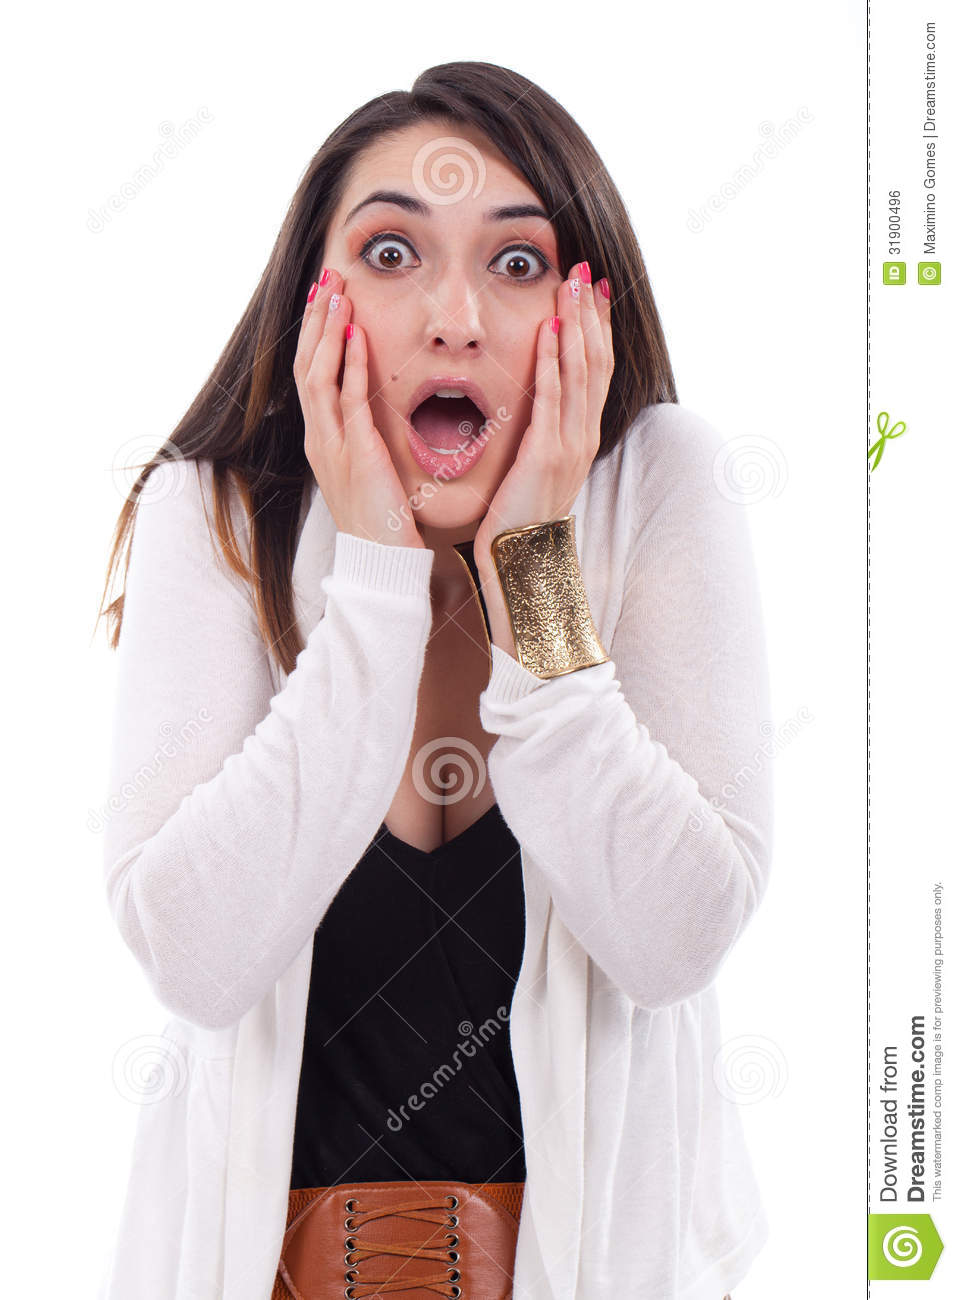 Portrait Of Young Woman Looking Surprised High-Res Stock